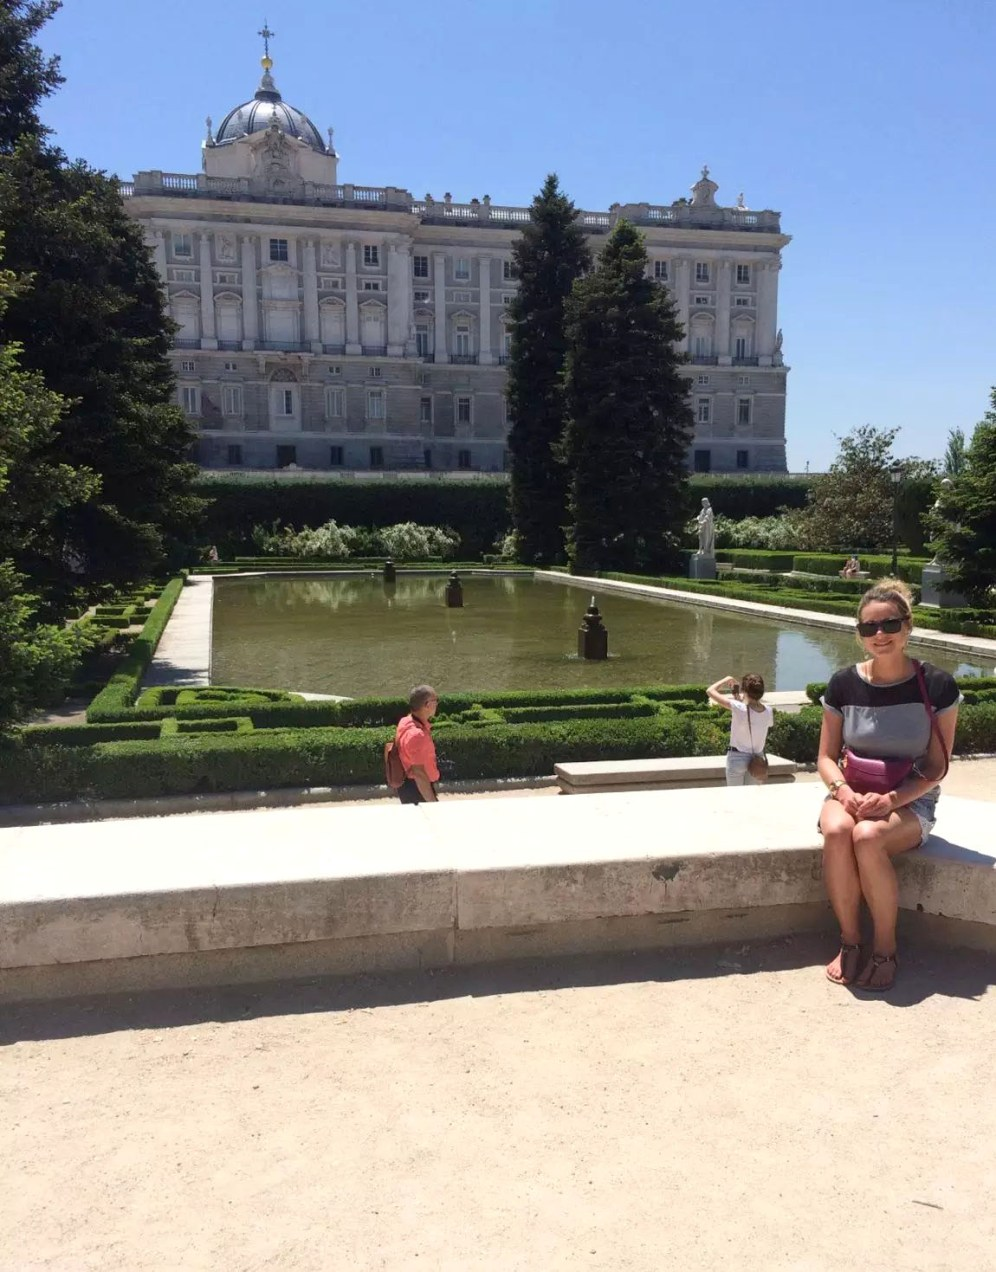 Madrid Sunshine Palcio Real de Madrid Walking Birthday Fountain Gardens Maze